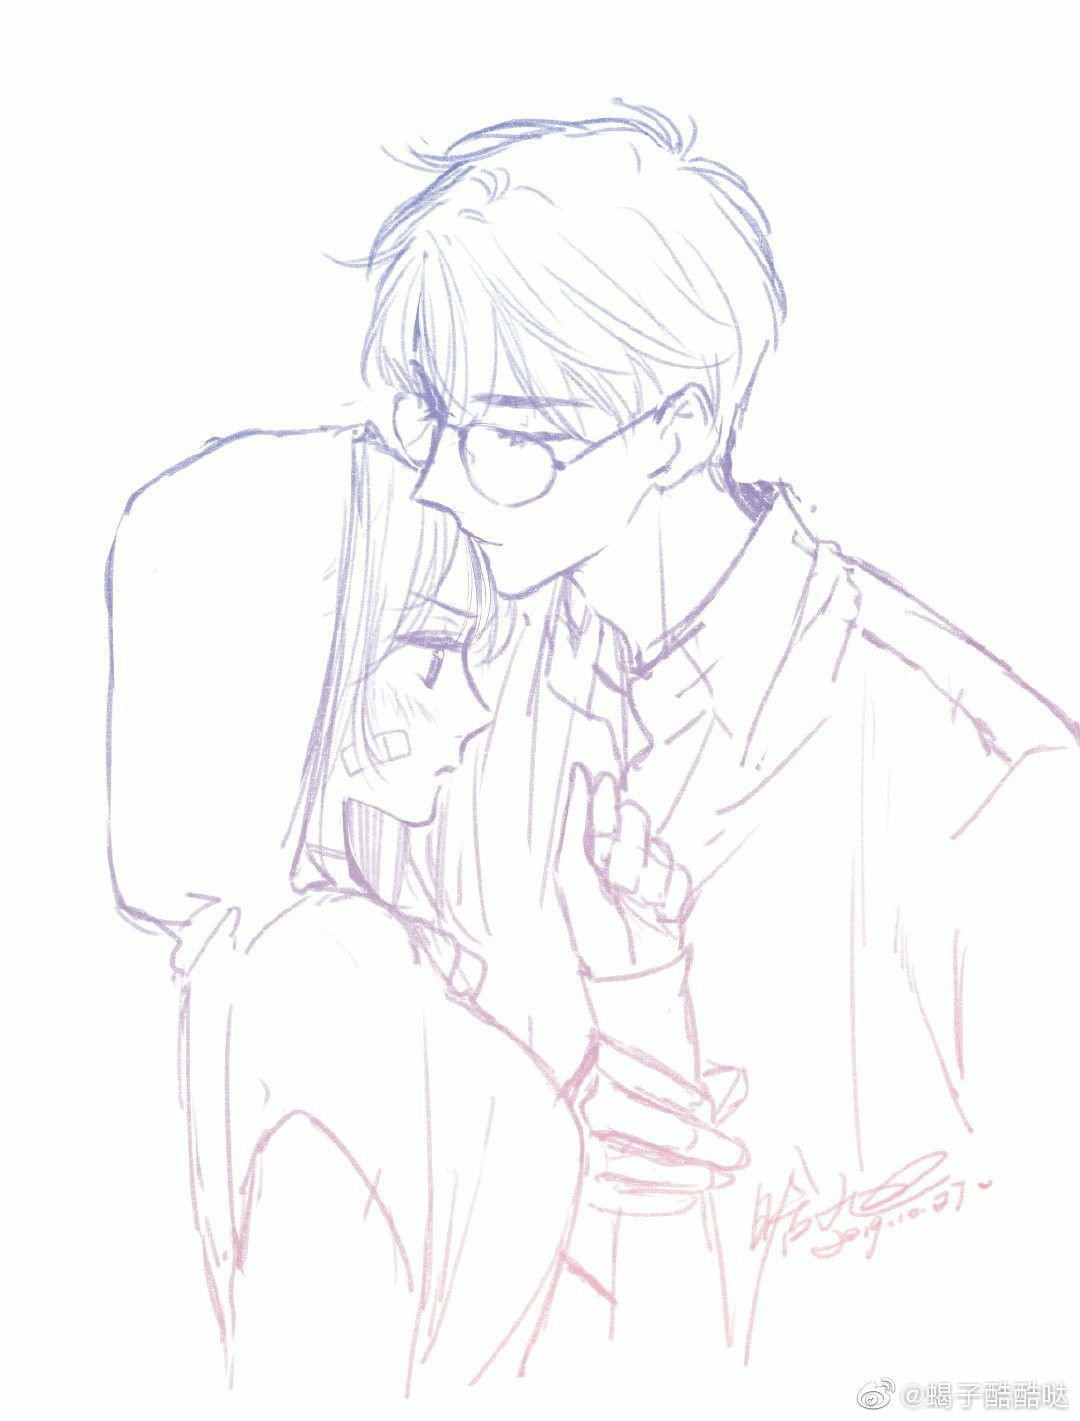 Sketch Couple In 2020 Anime Poses Reference Anime Sketch Anime Drawings Sketches